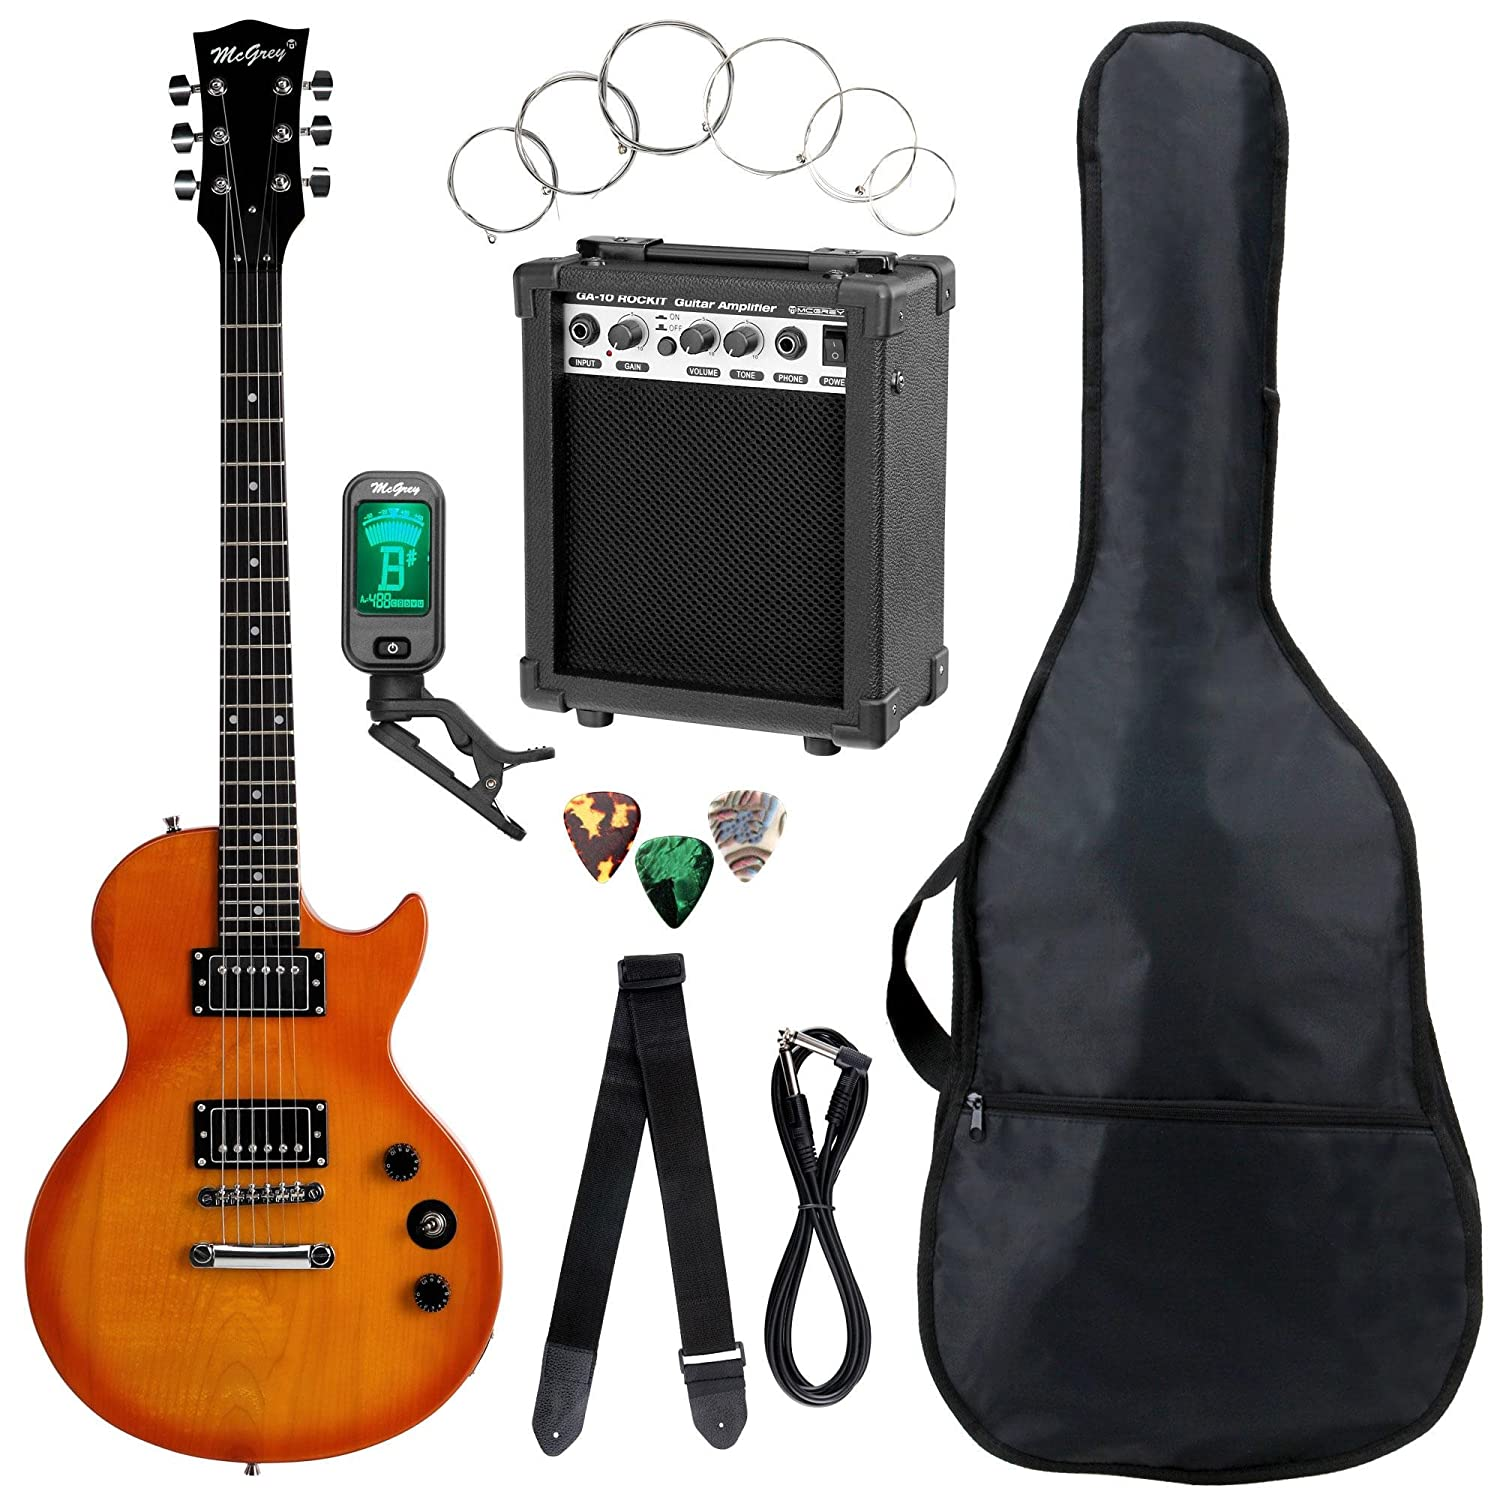 Set completo de guitarra eléctrica McGrey Rockit Simple Cut naranja intenso: Amazon.es: Instrumentos musicales